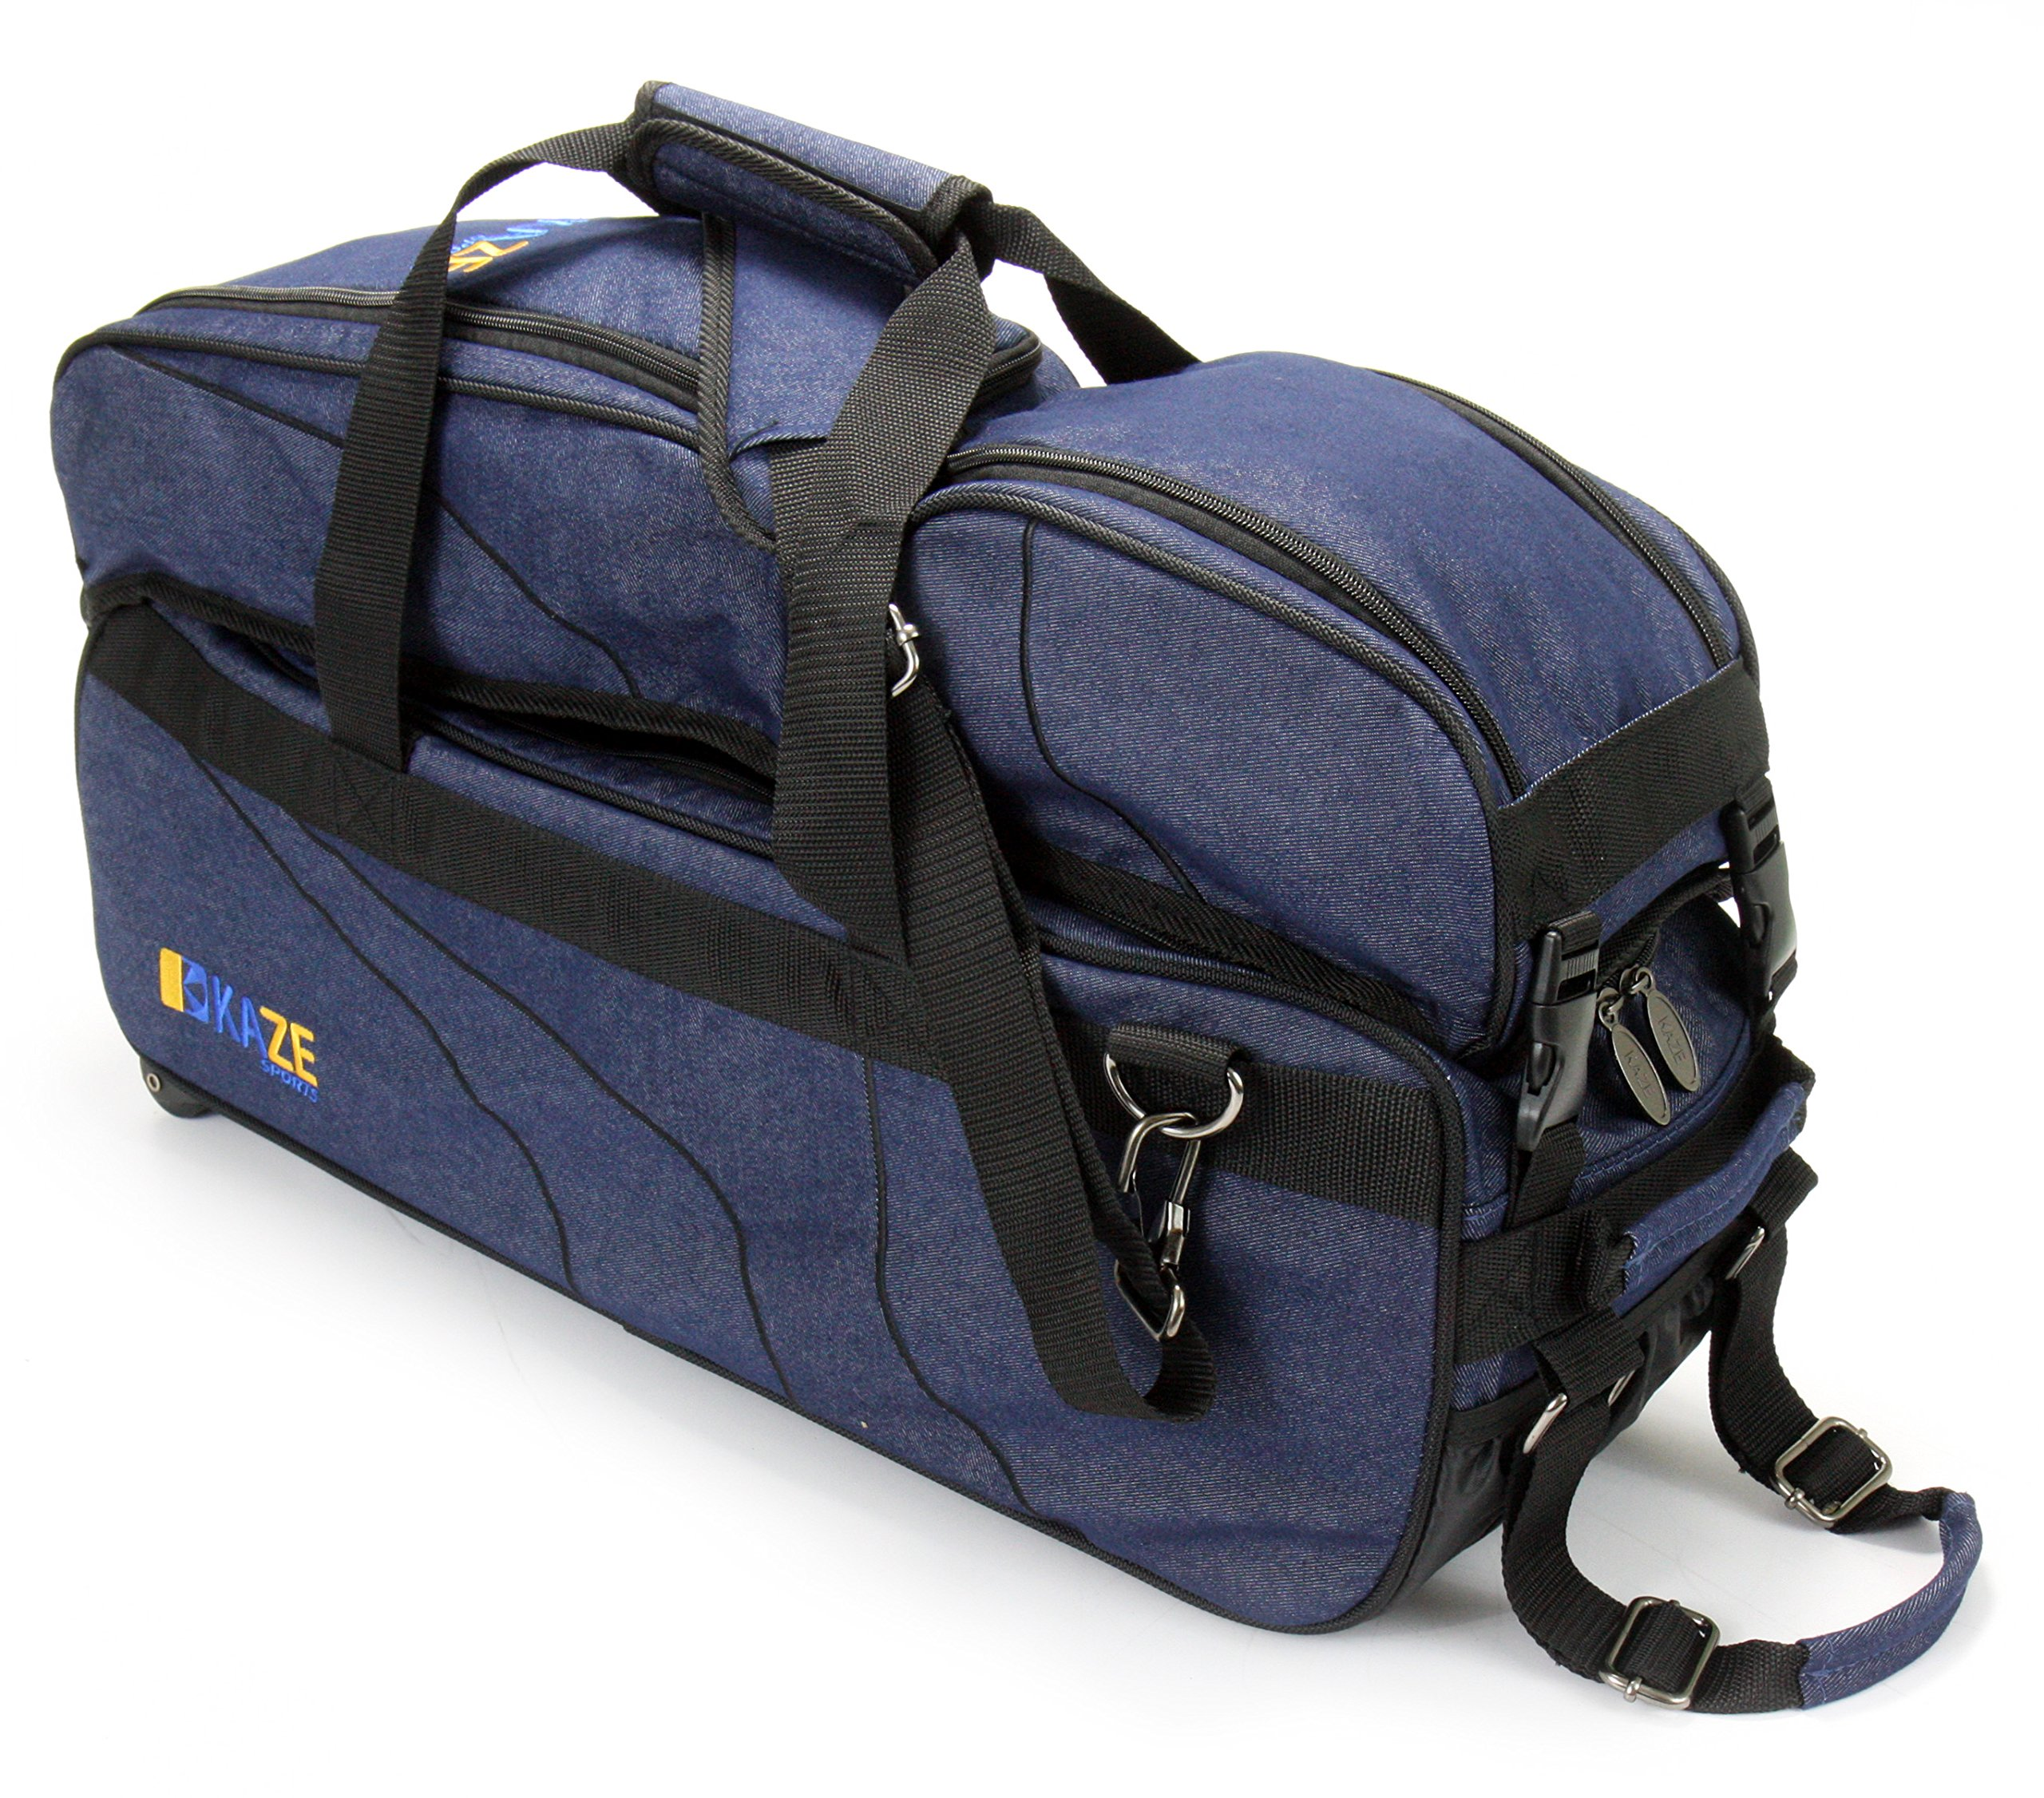 KAZE SPORTS 3 Ball Deluxe Bowling Tournament Roller Tote with Detachable Shoe & Accessory Bag, Blue